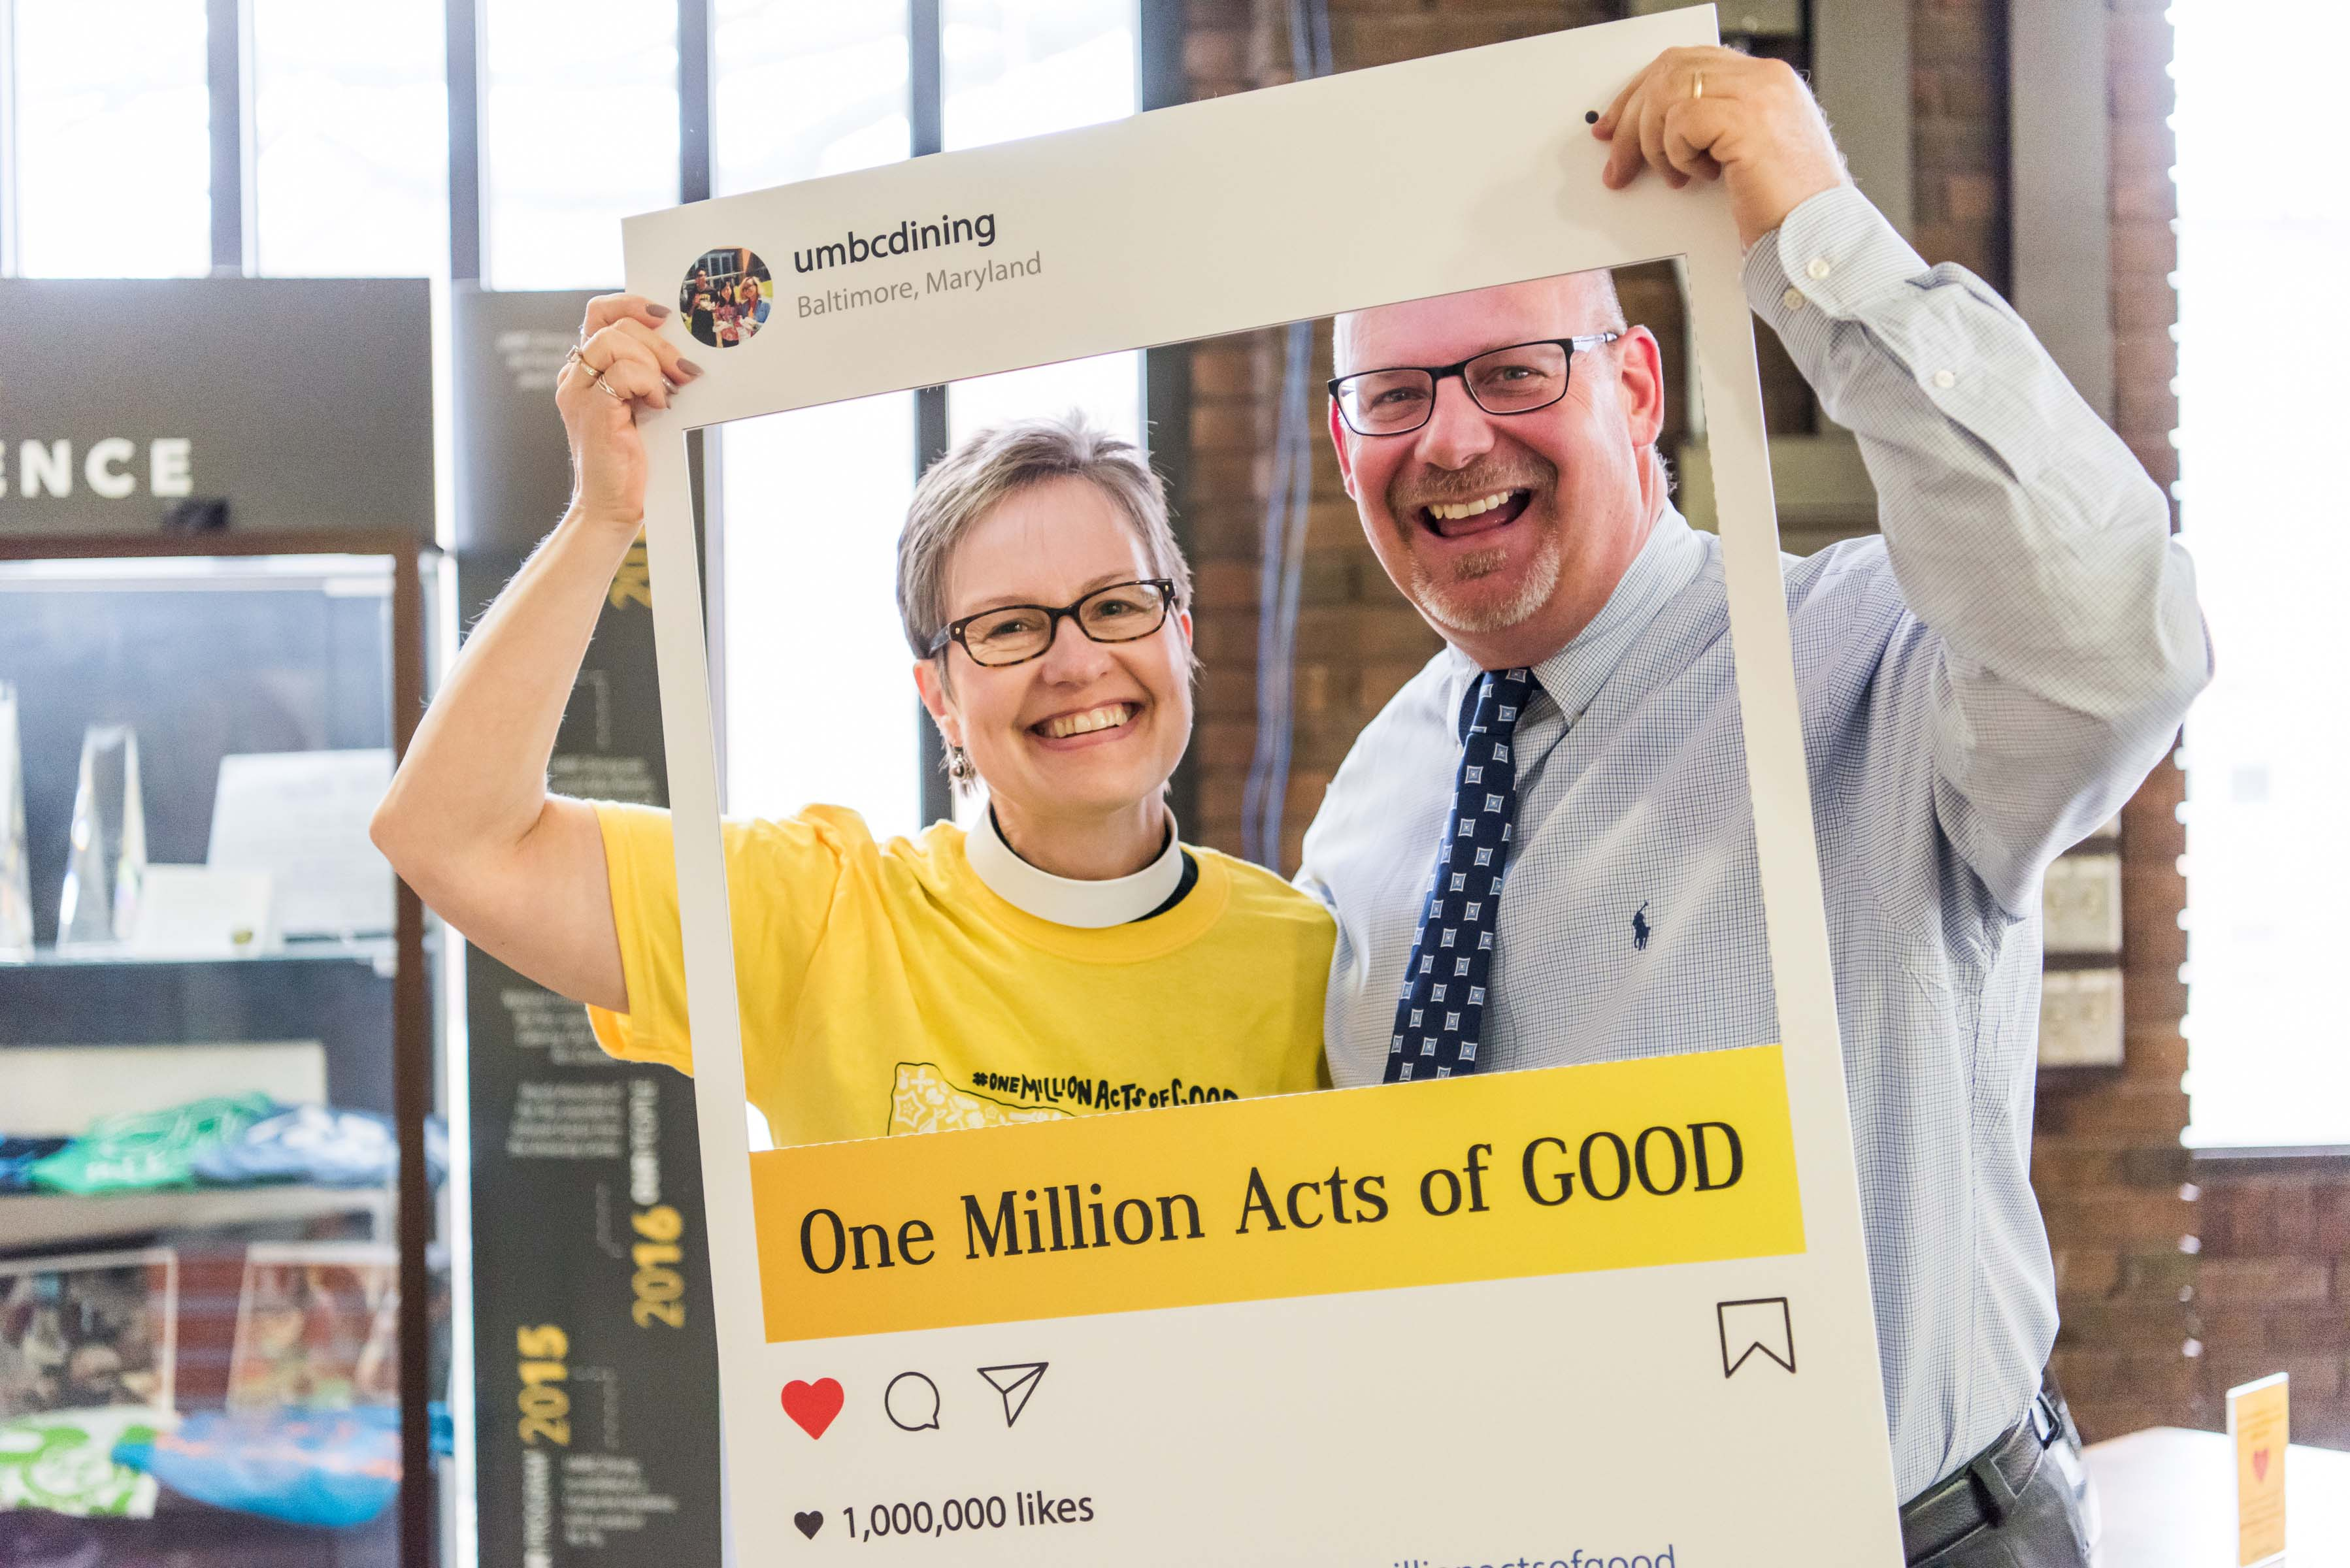 Two people pose with one million acts of good frame